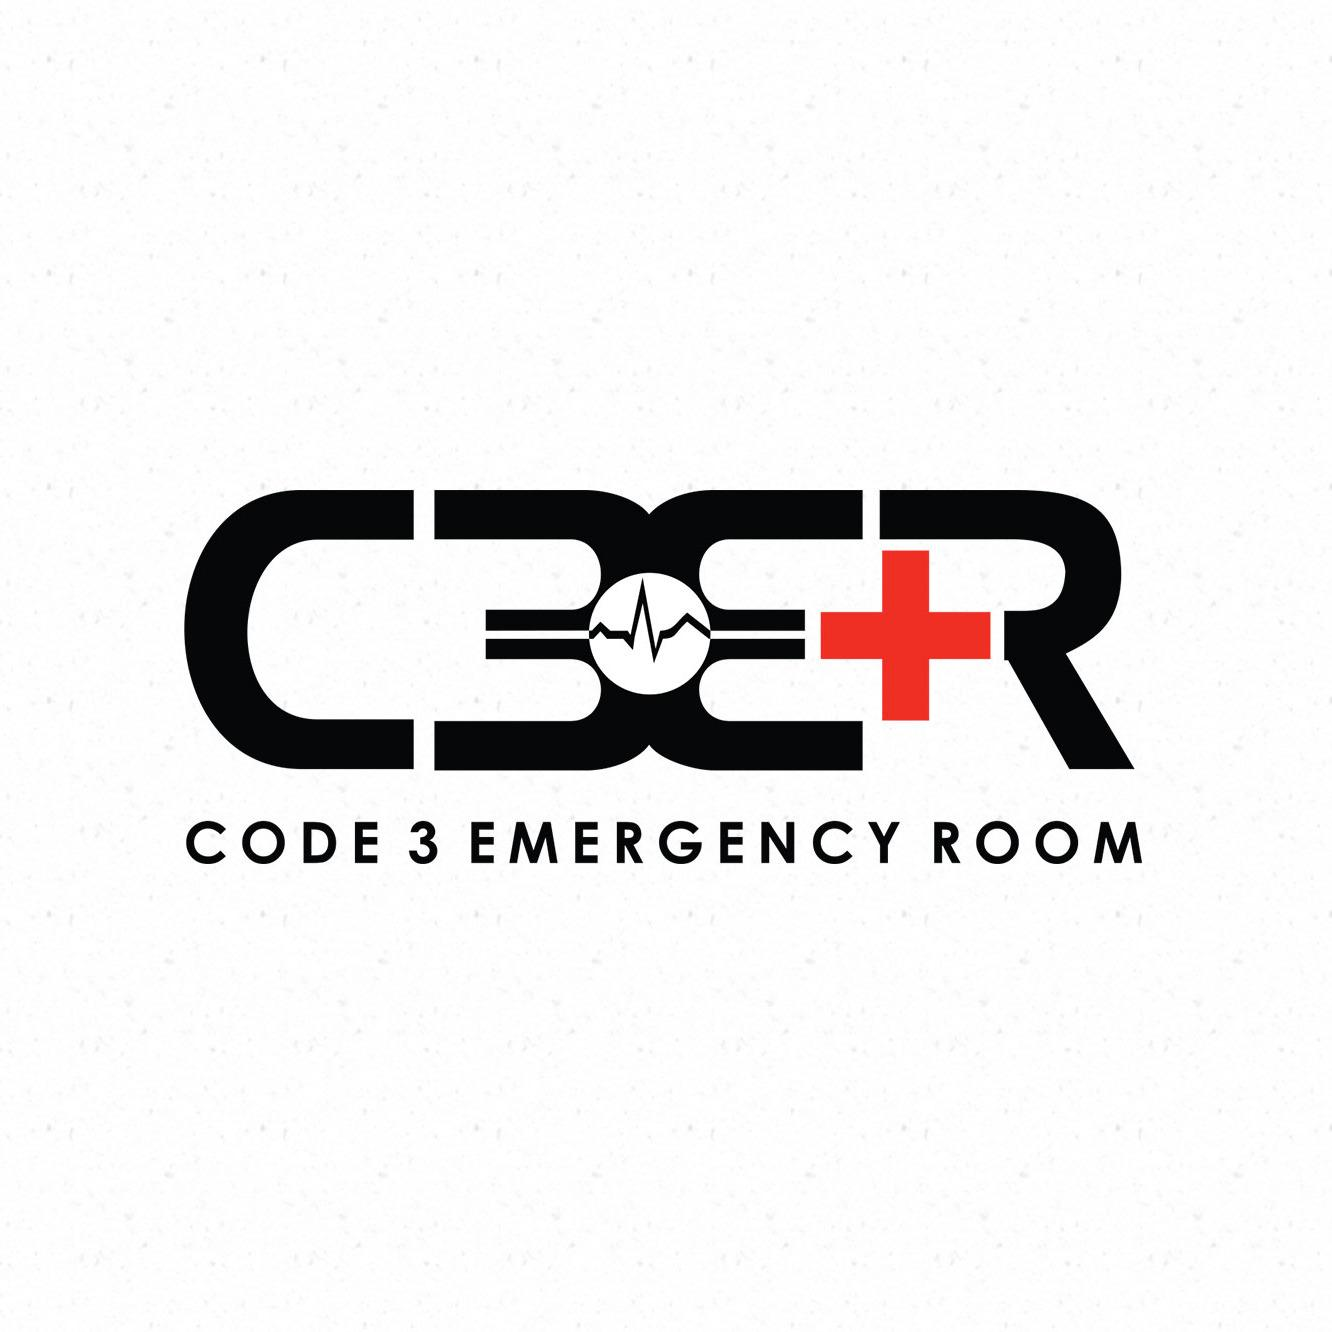 Code 3 ER and Urgent Care image 7